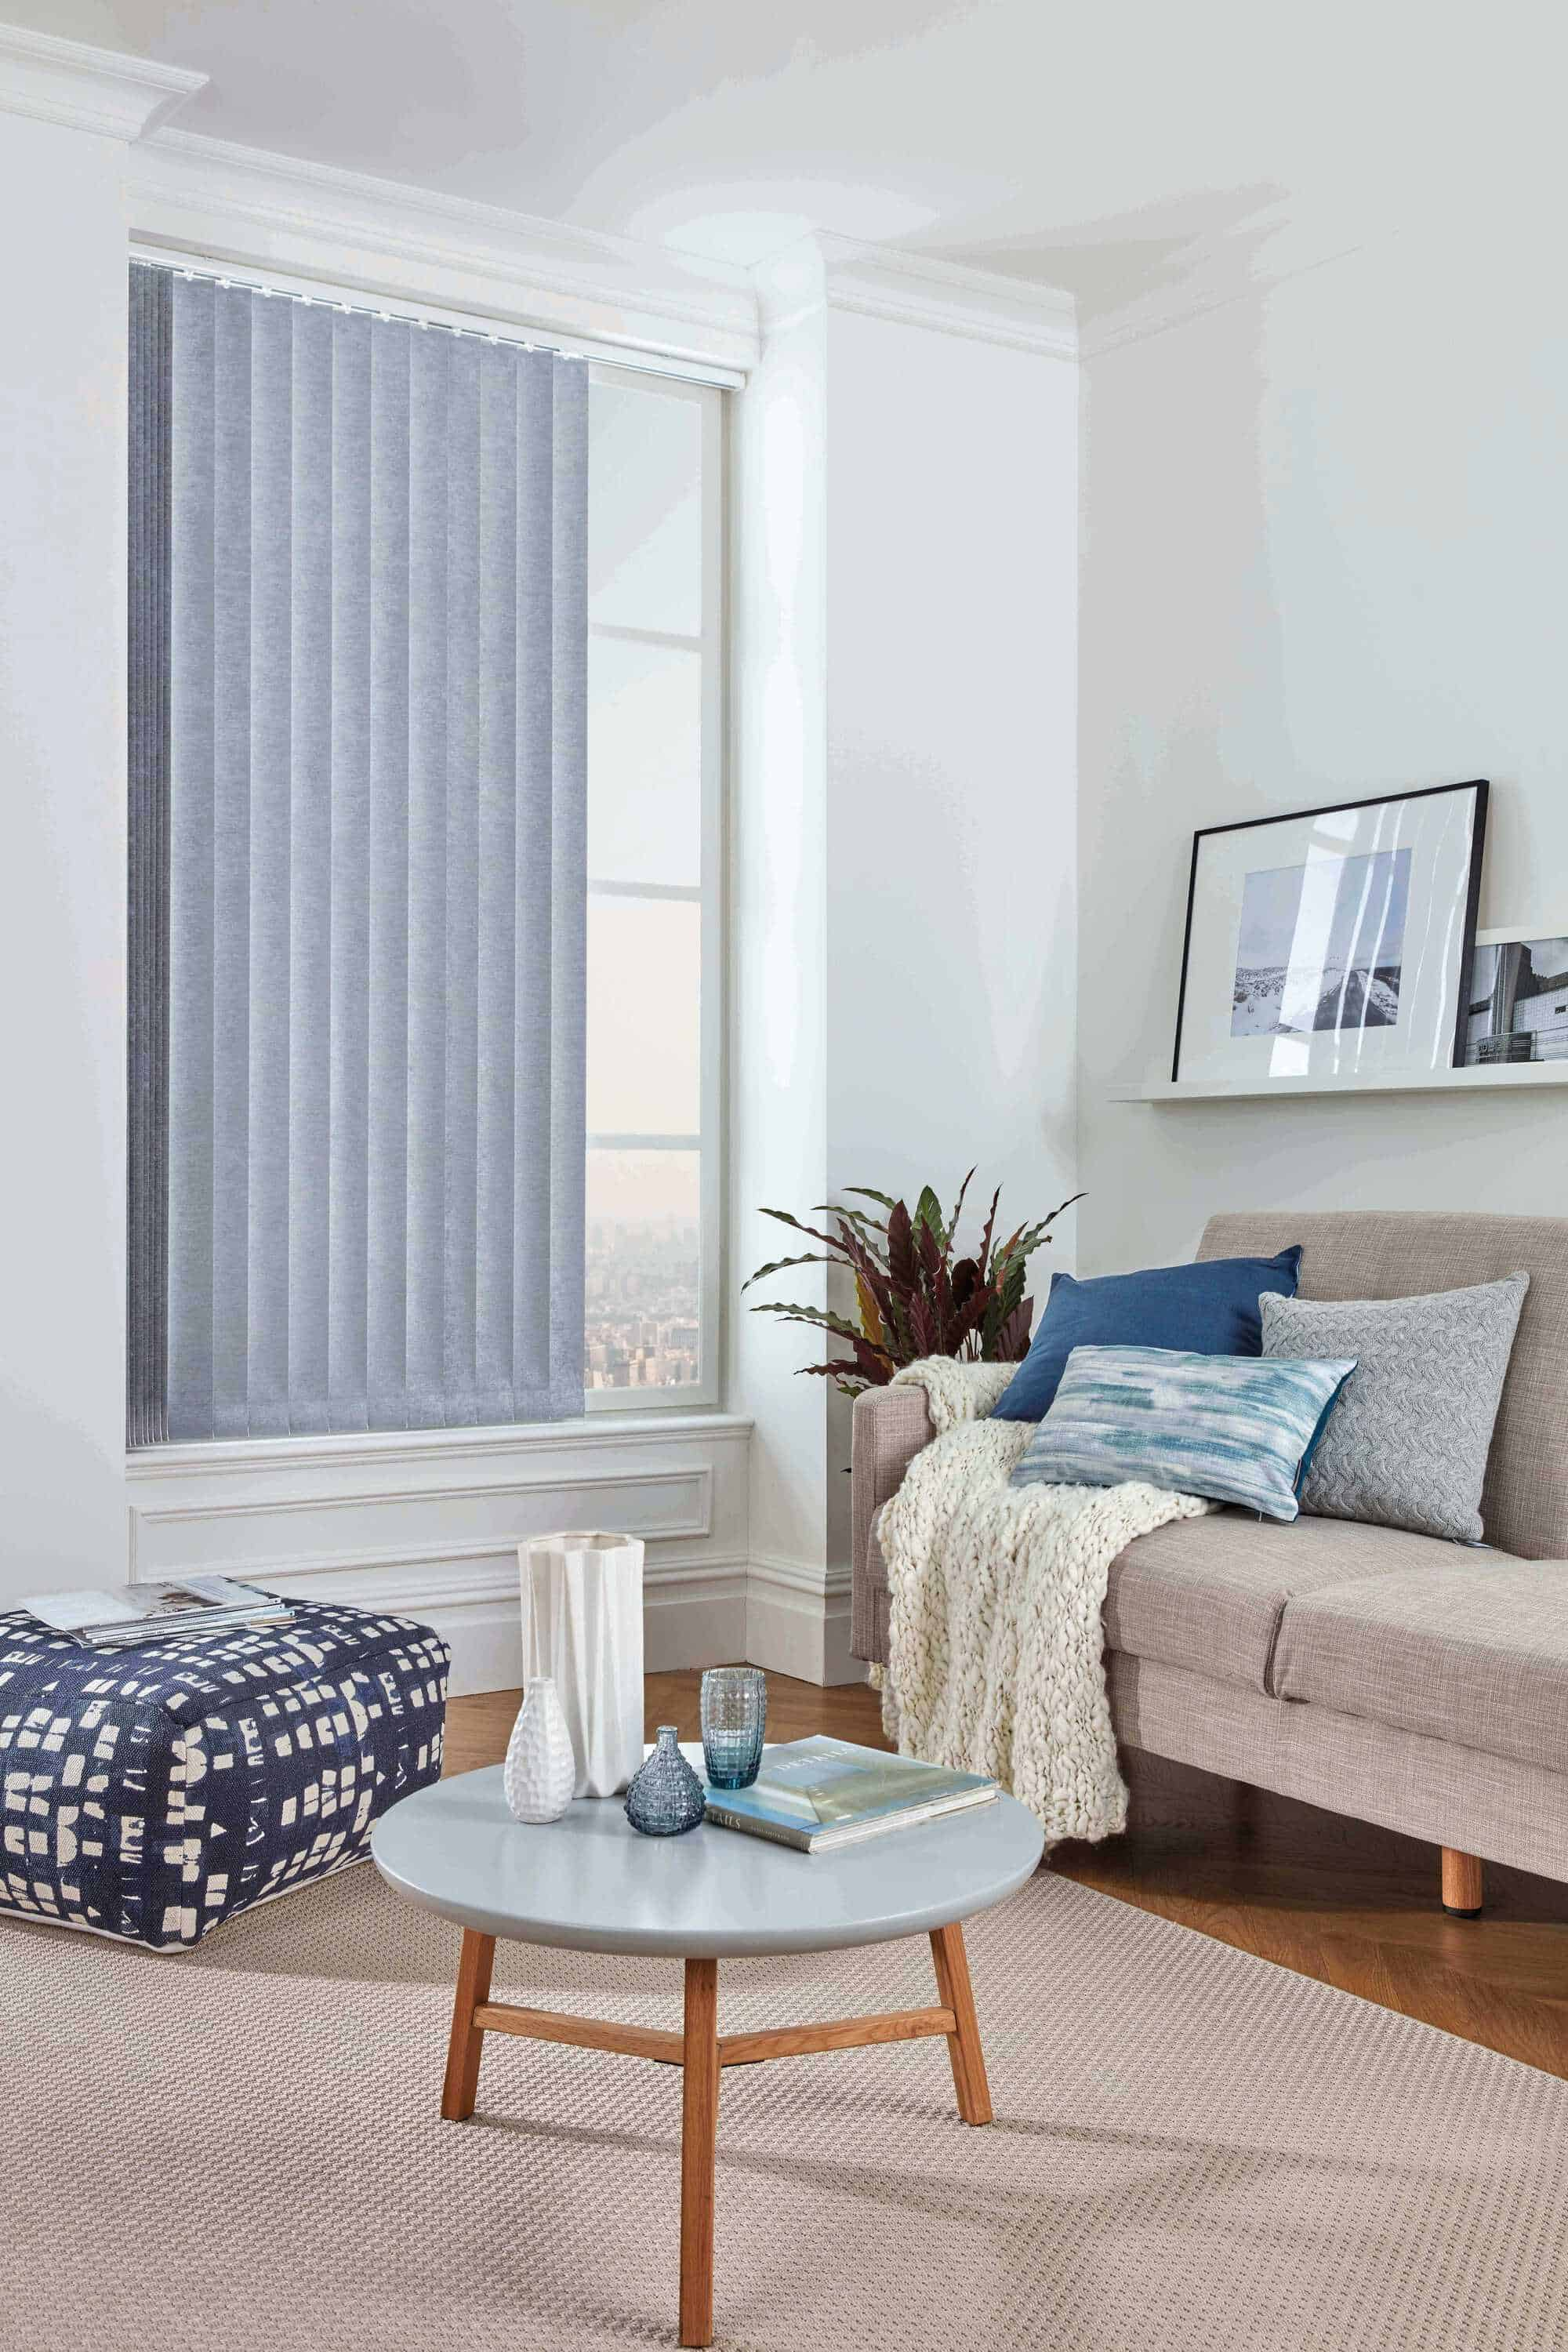 Vertical Blinds Glasgow Edinburgh Cornish Blue